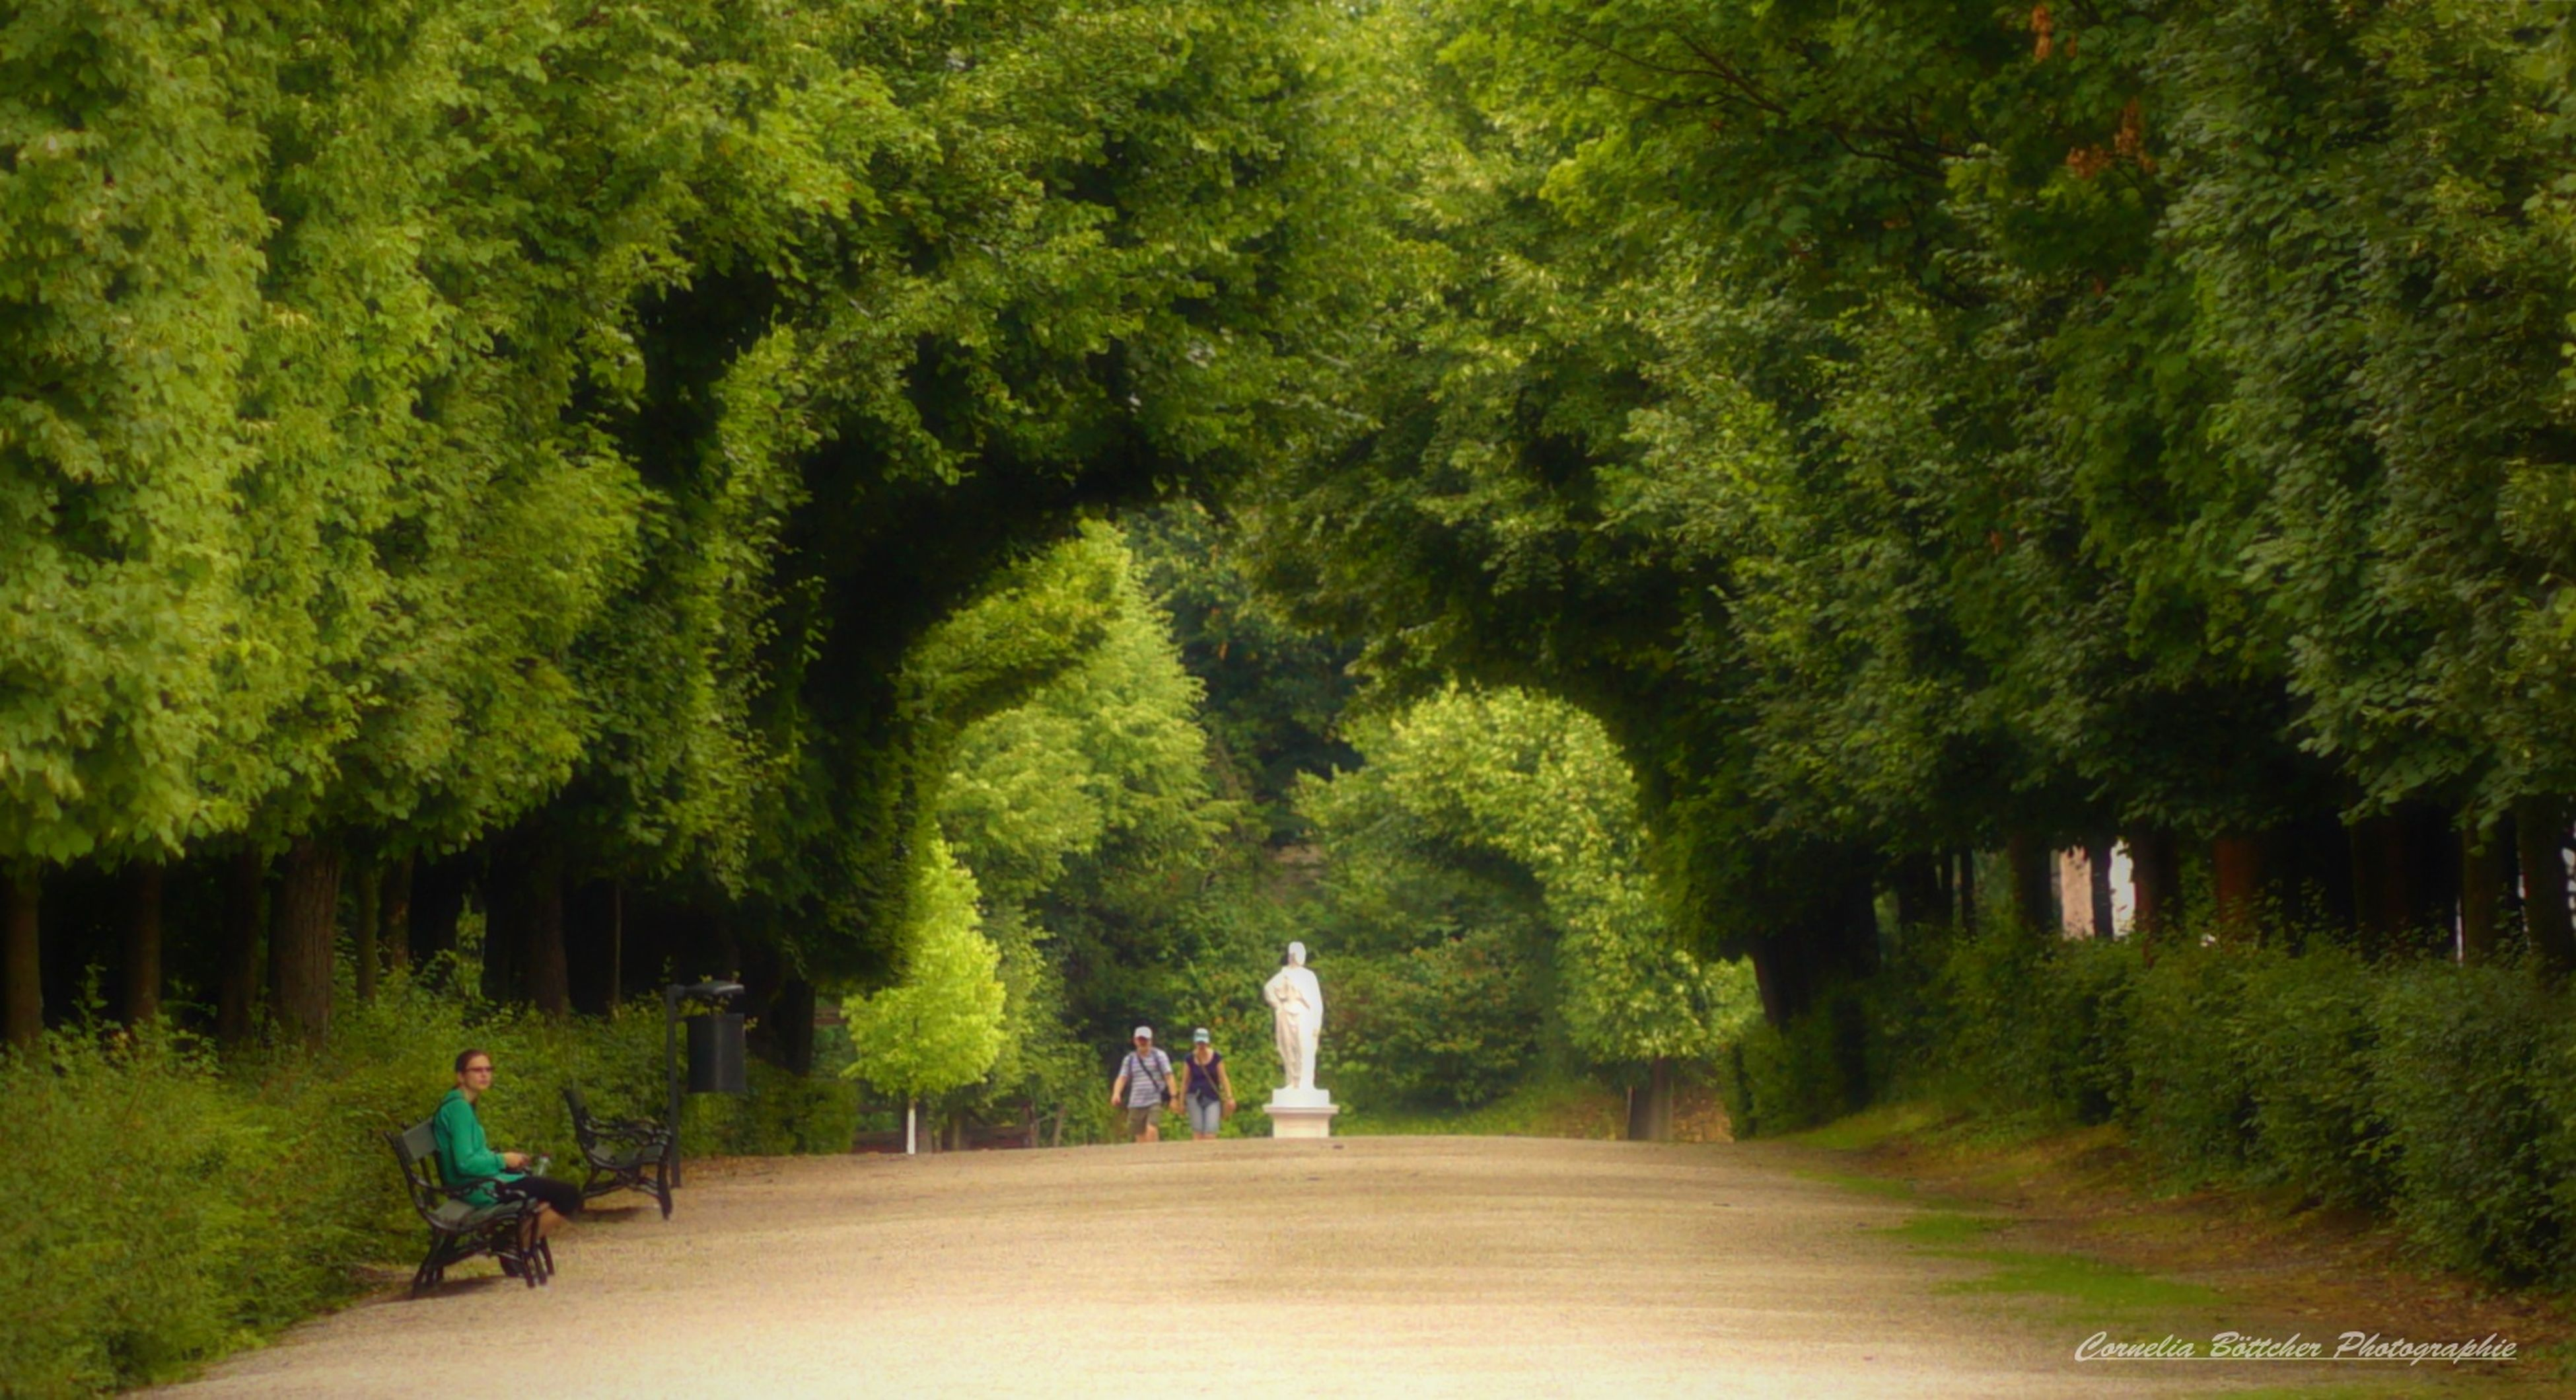 tree, bicycle, cycling, real people, nature, growth, men, transportation, the way forward, road, full length, outdoors, day, people, adult